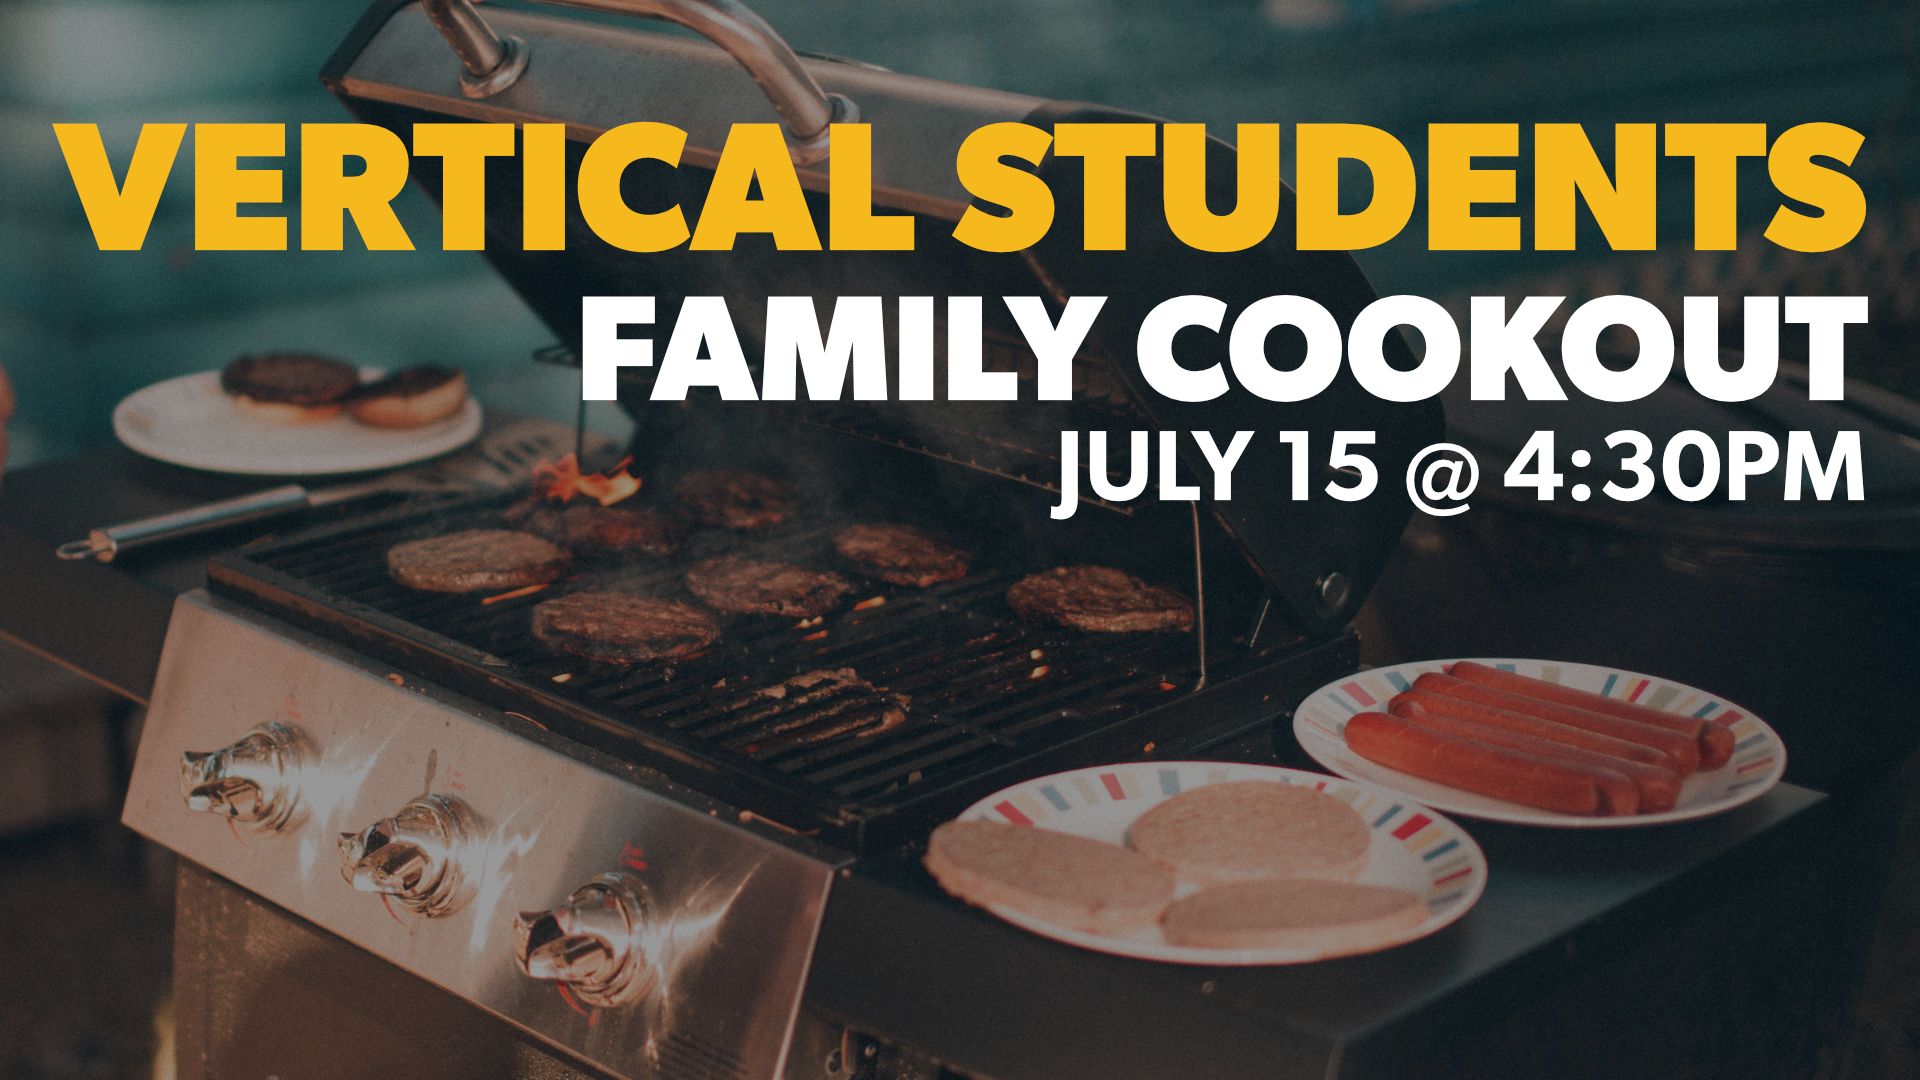 Vertical Students Family Cookout.jpg